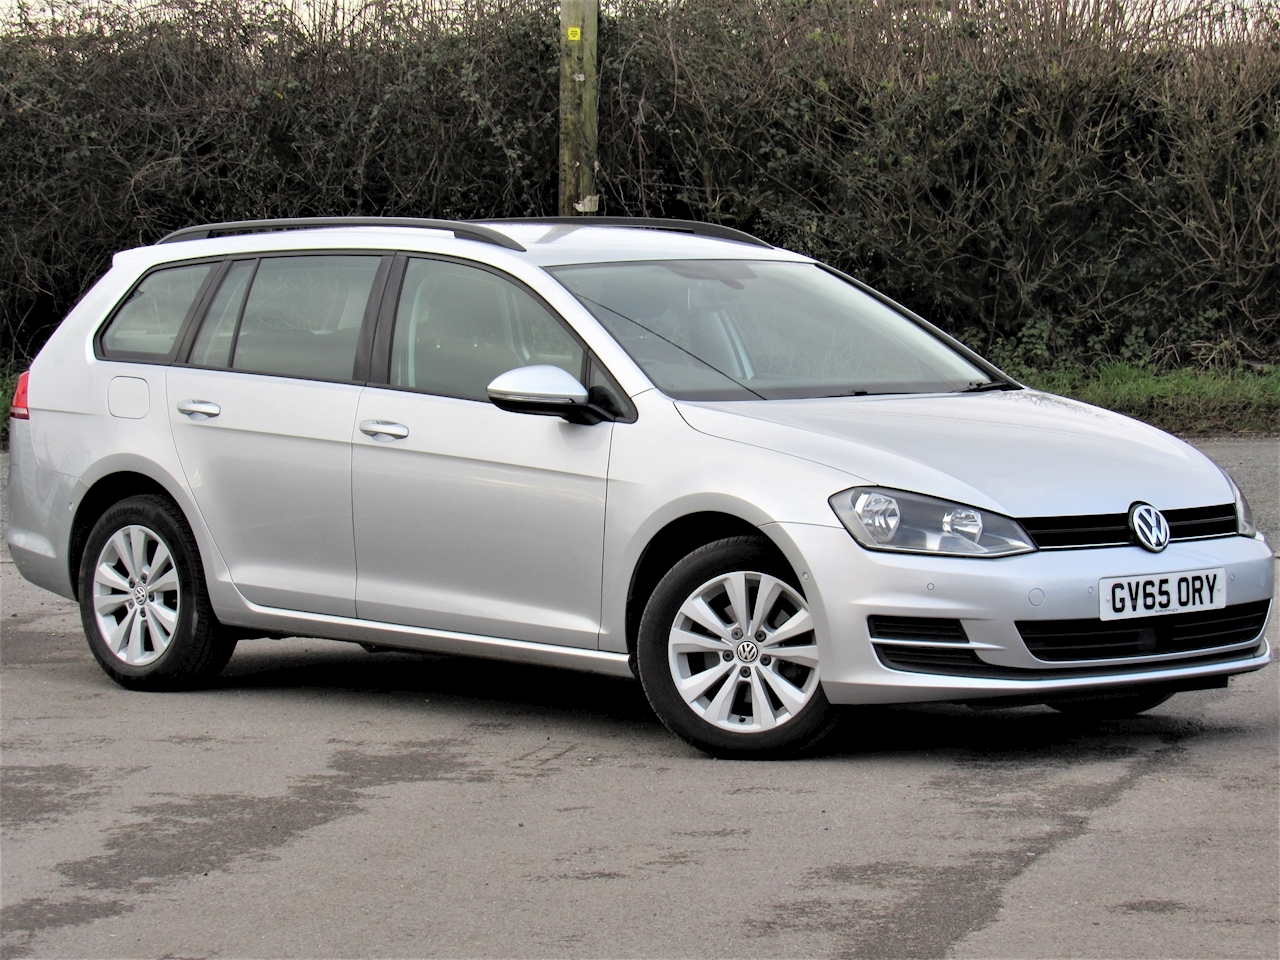 Golf Se Tdi Bluemotion Technology Estate 1.6 Manual Diesel